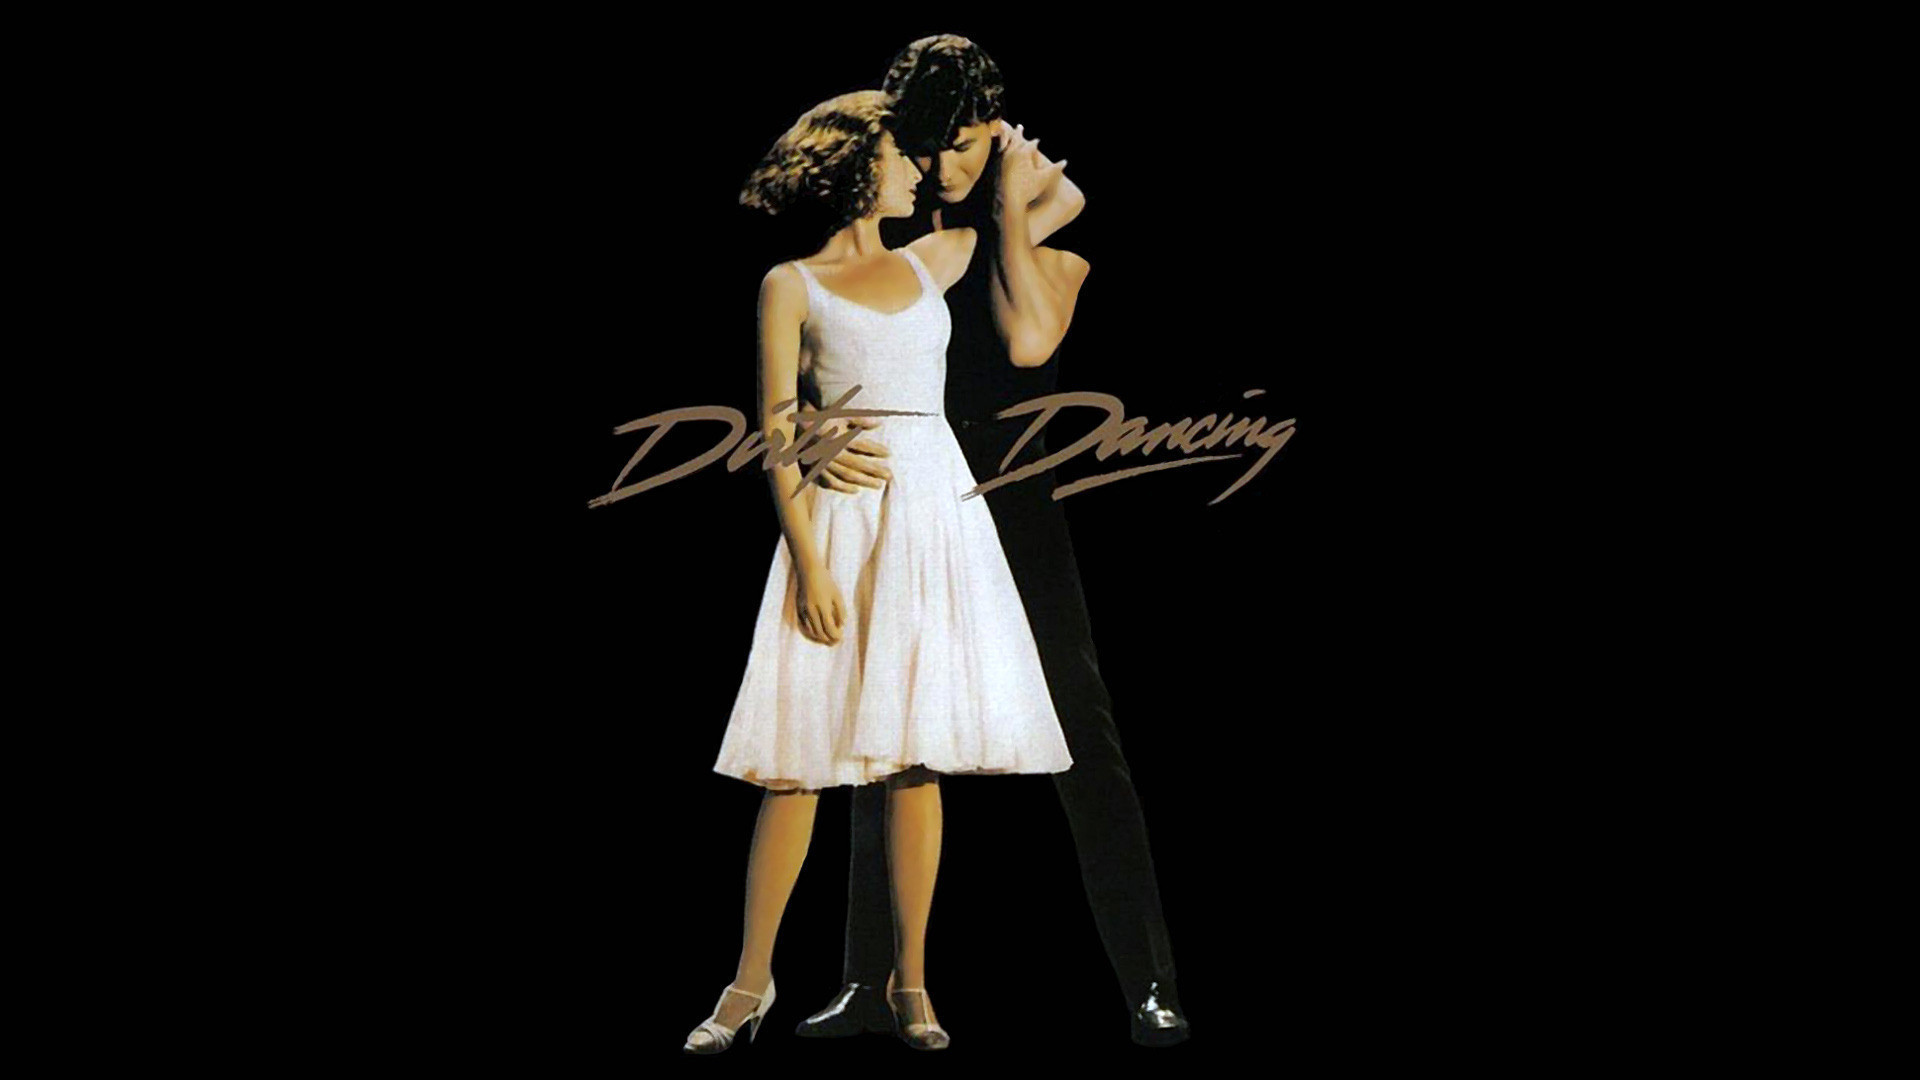 Res: 1920x1080, Images from: Dirty Dancing